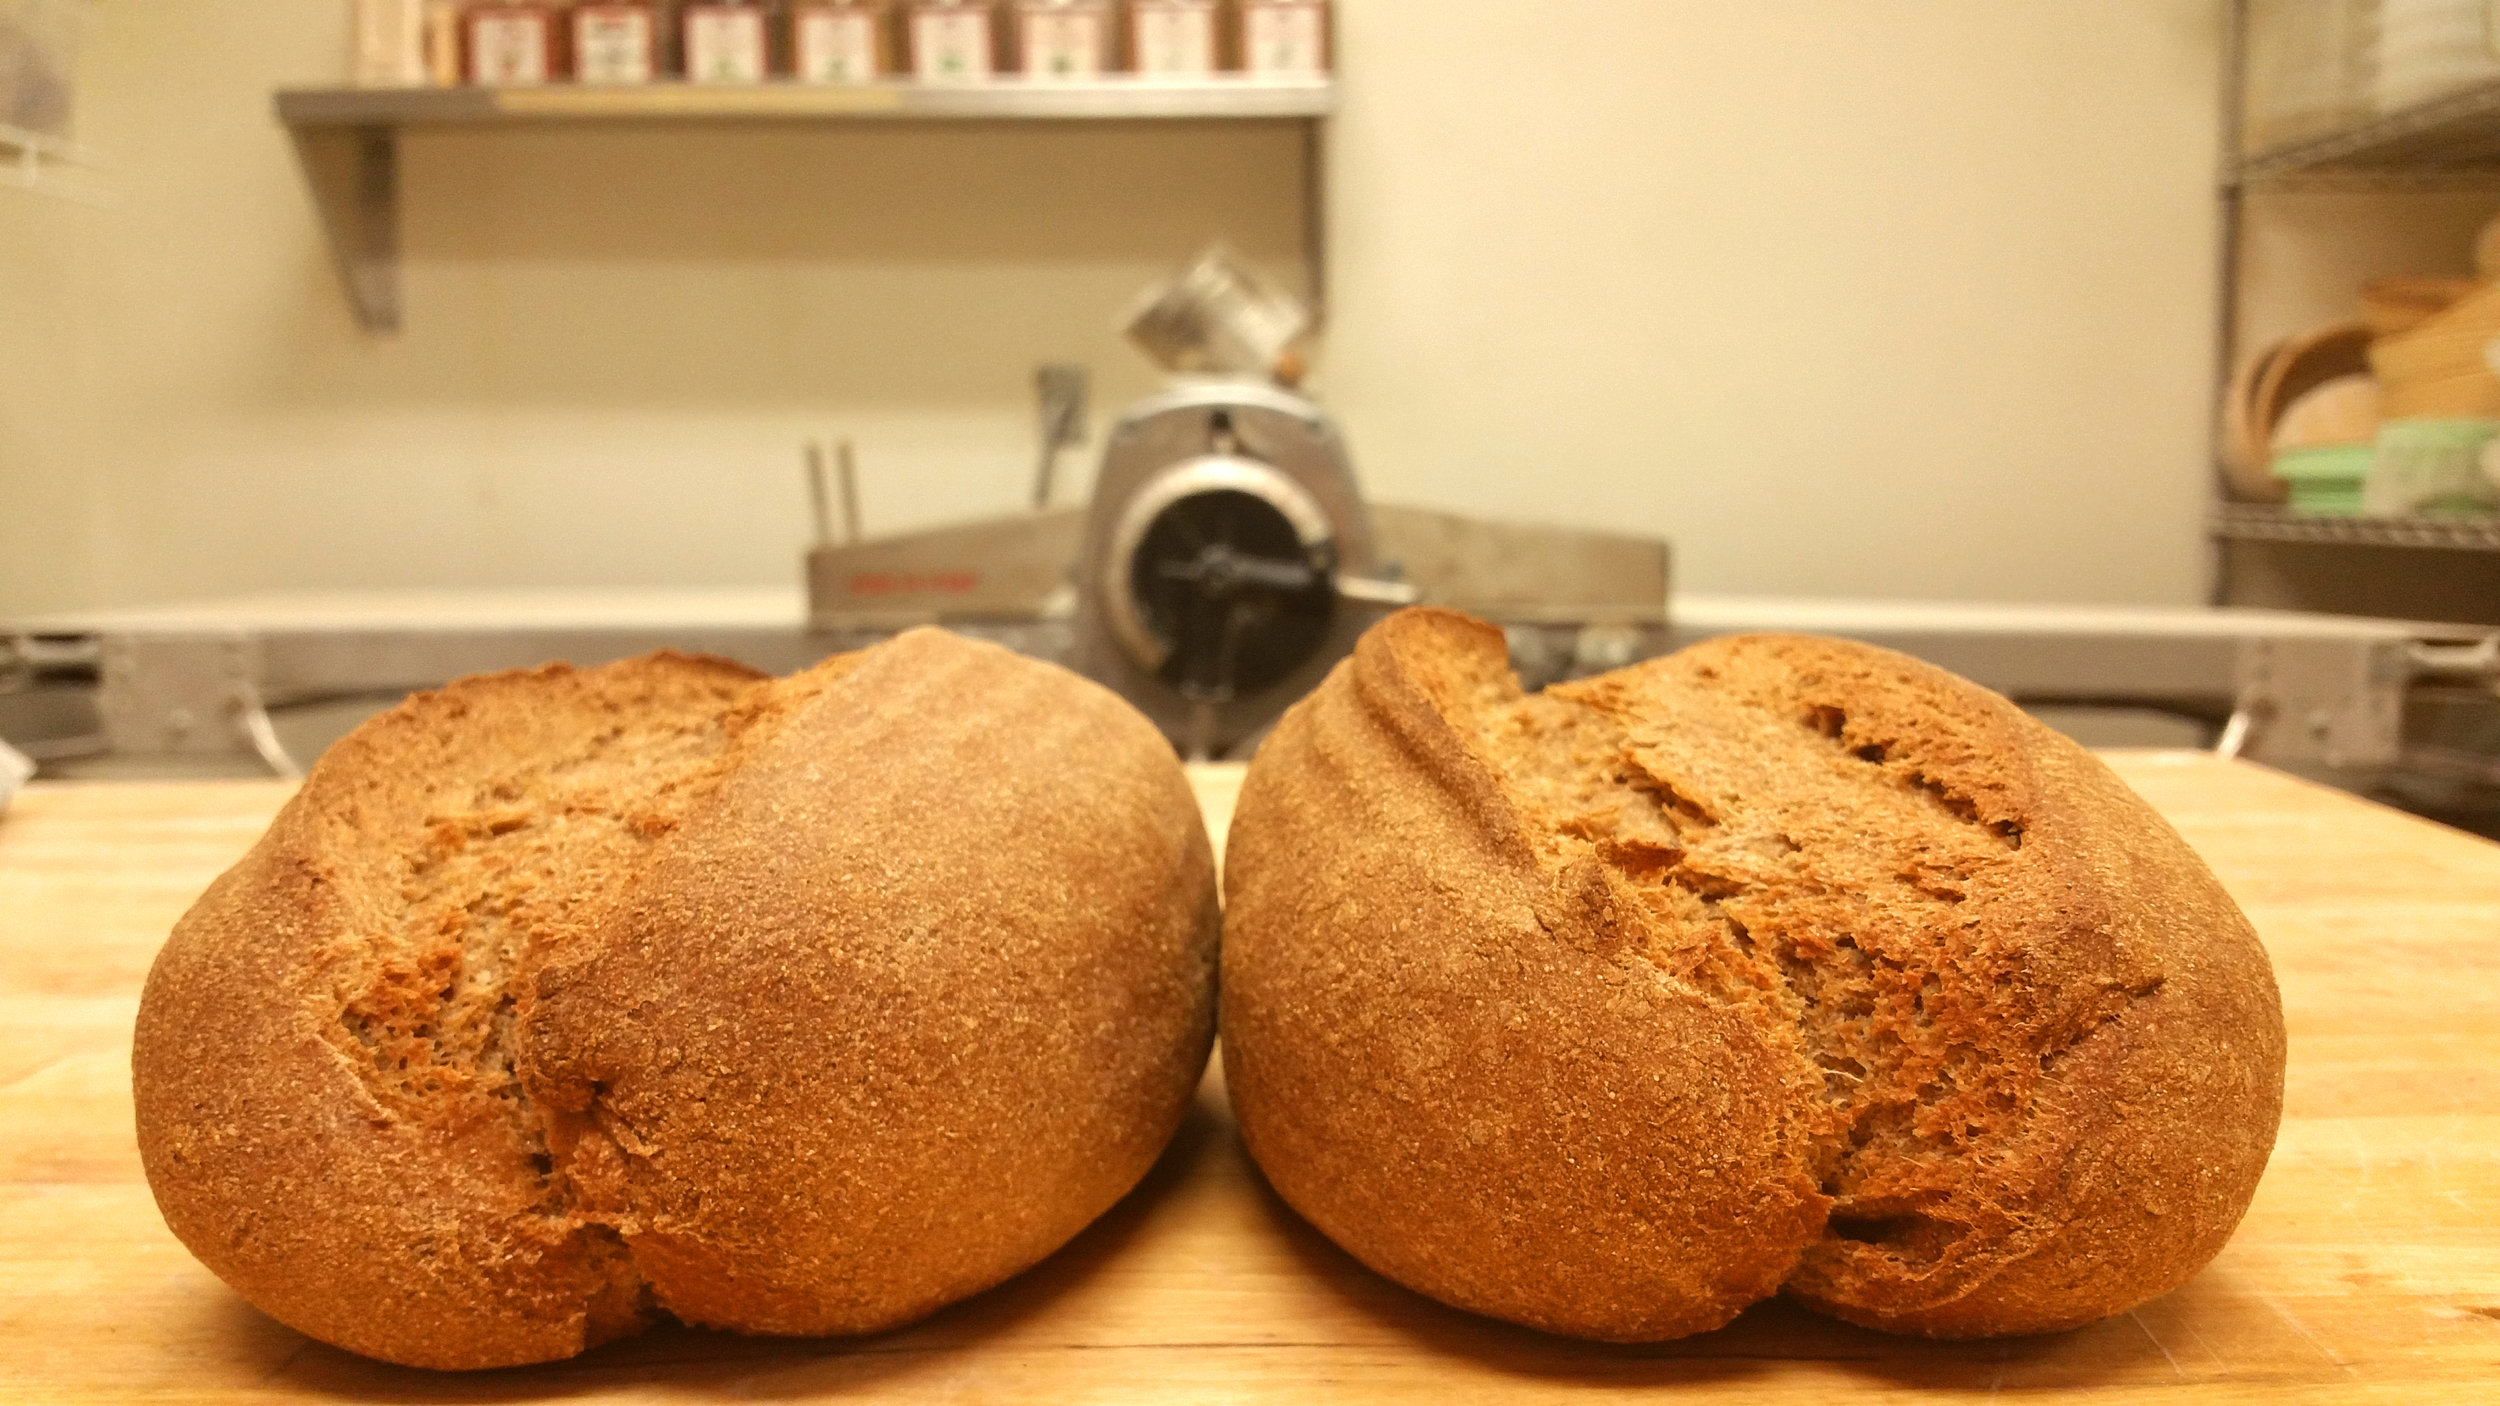 Check out our Rye